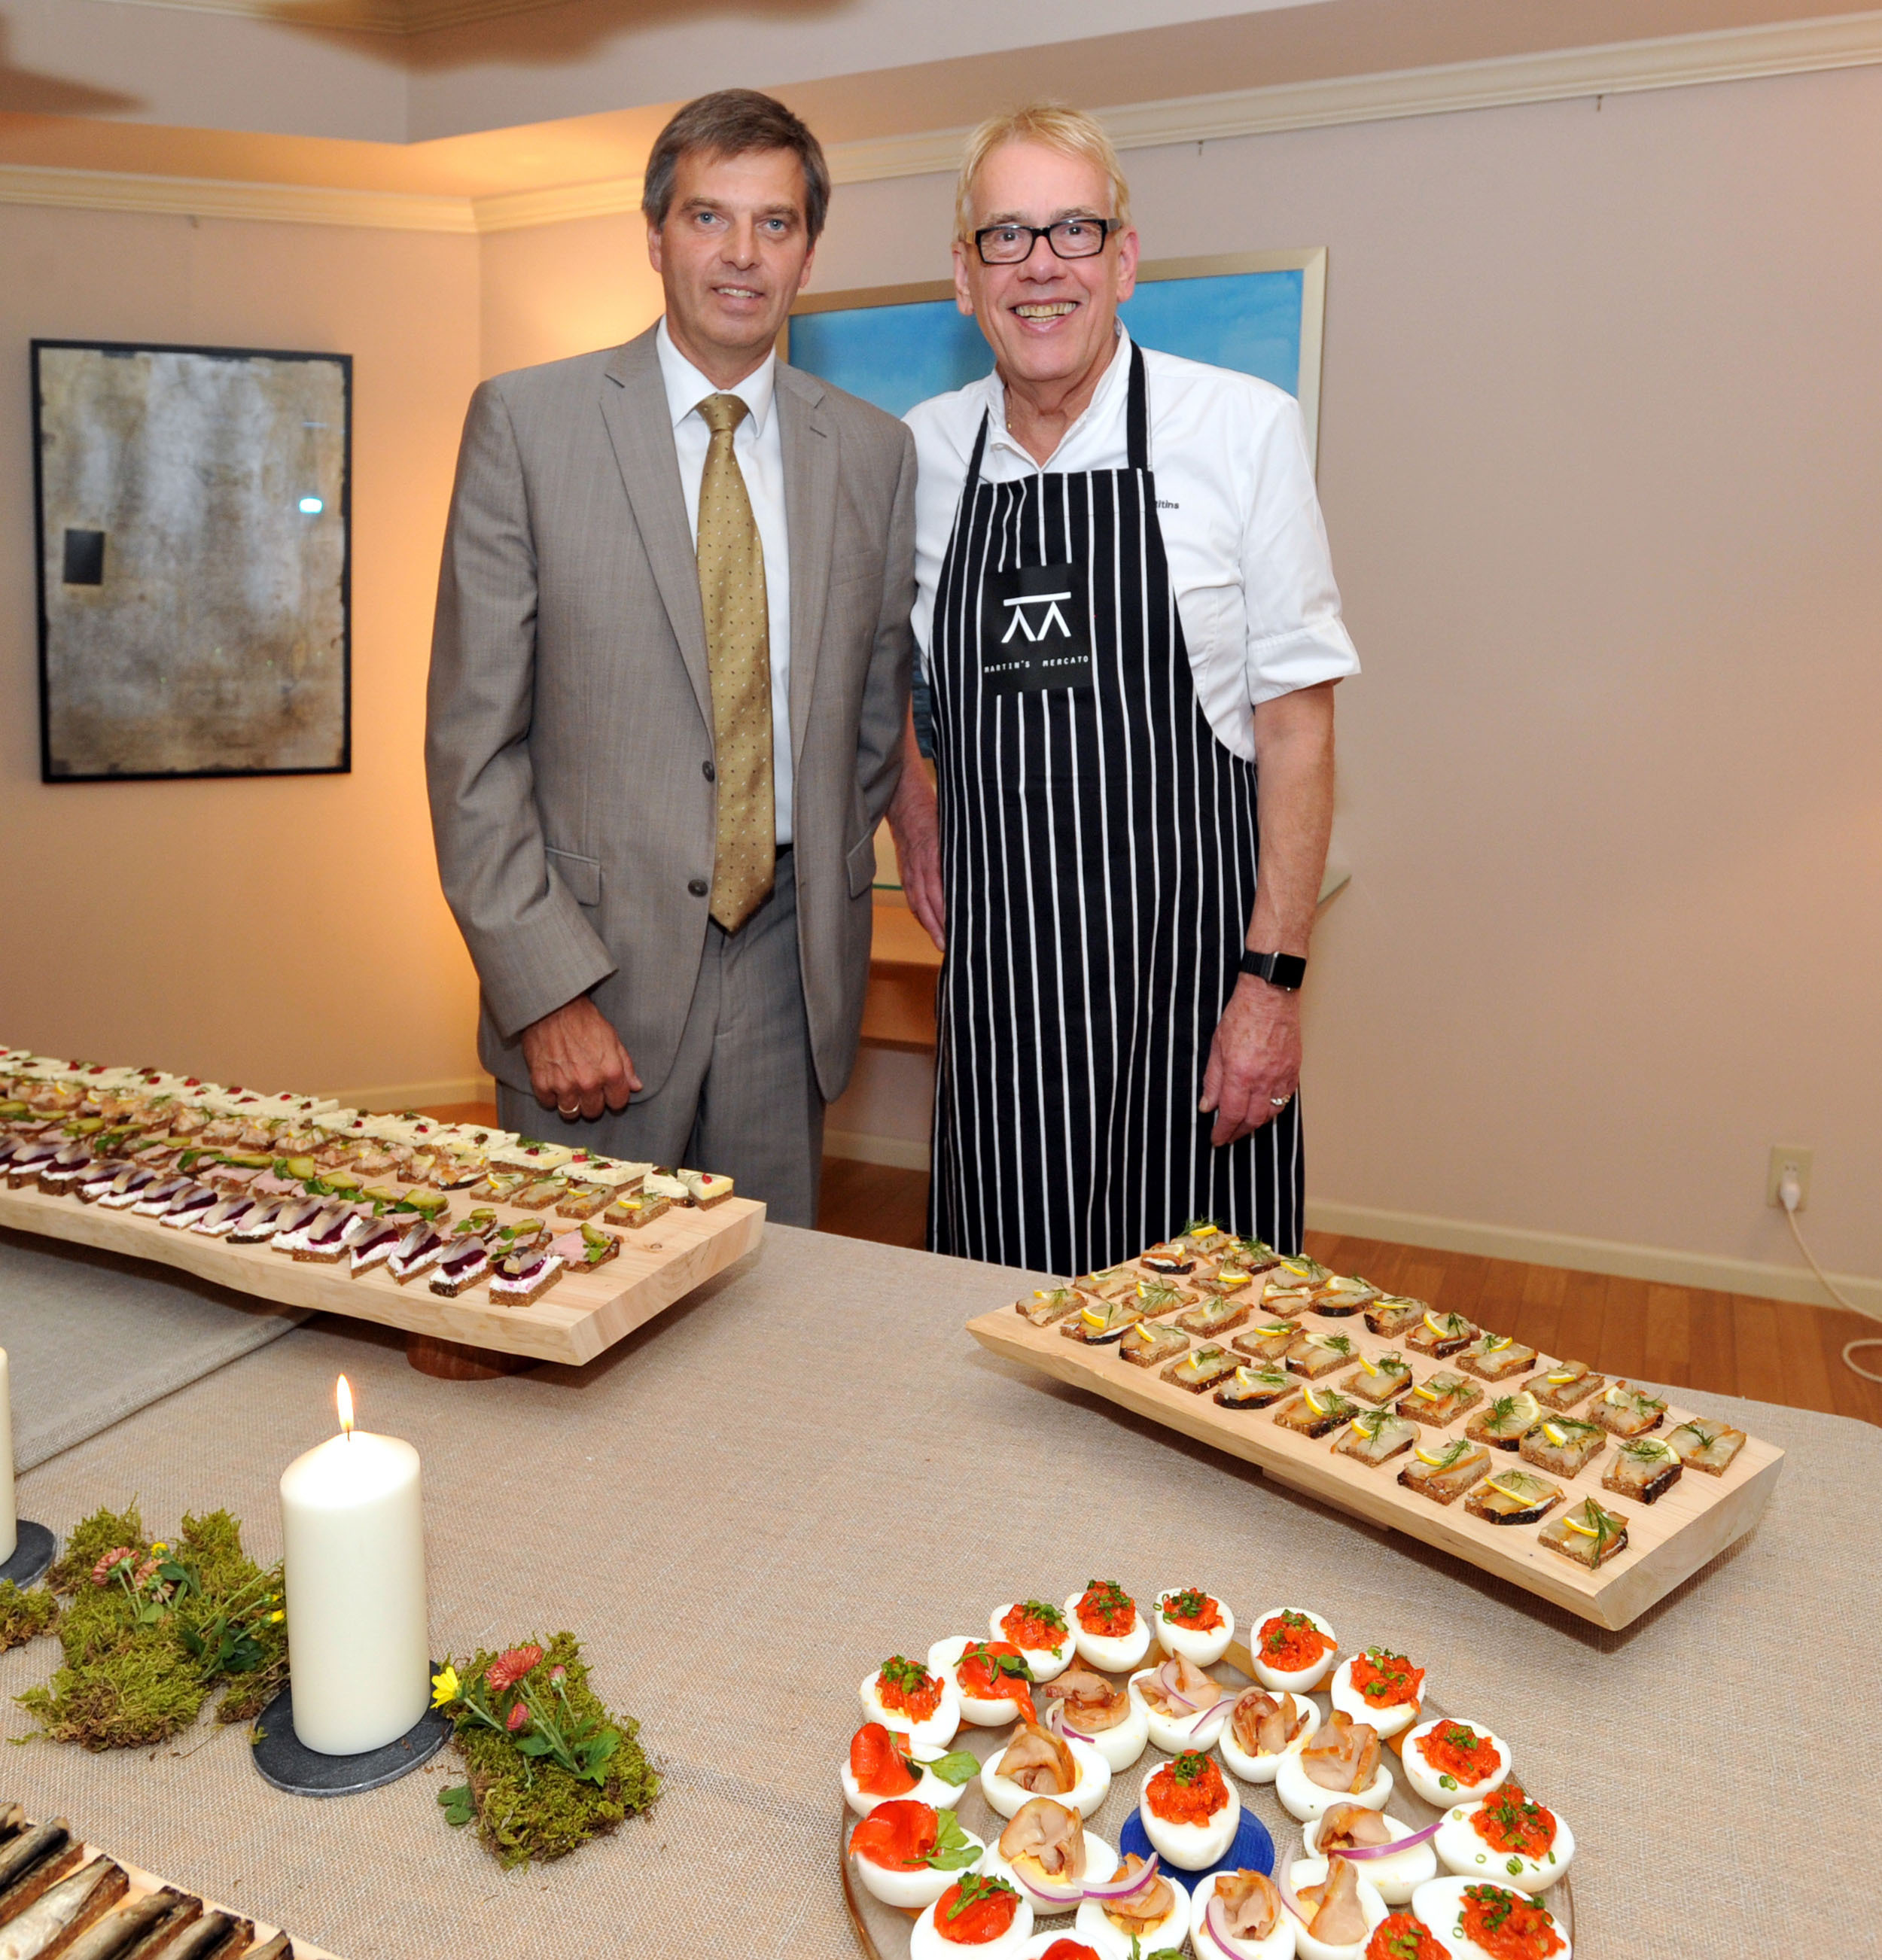 Vincents restaurant chef Martins Ritins (right) from Latvia joins Latvian Ambassador Normans Penke, at a press conference and tasting of Latvian traditional foods promoting his events in Japan next month at the embassy in Tokyo on Oct. 14. | YOSHIAKI MIURA